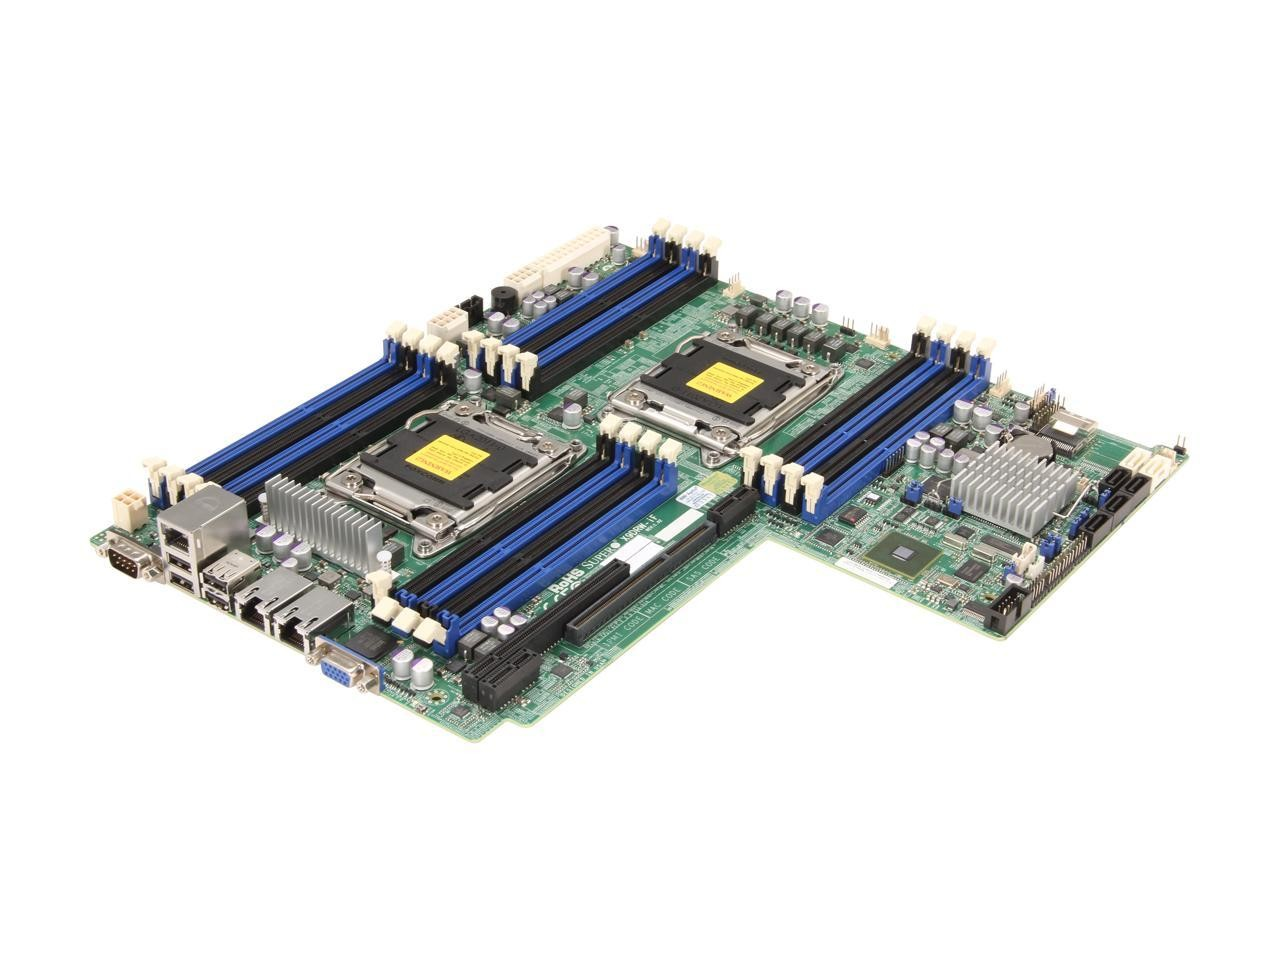 SuperMicro X9DRW-IF Intel C602 Chipset DDR3 Dual Socket LGA 2011 MBD-X9DRW-IF-B Bulk Server Motherboard